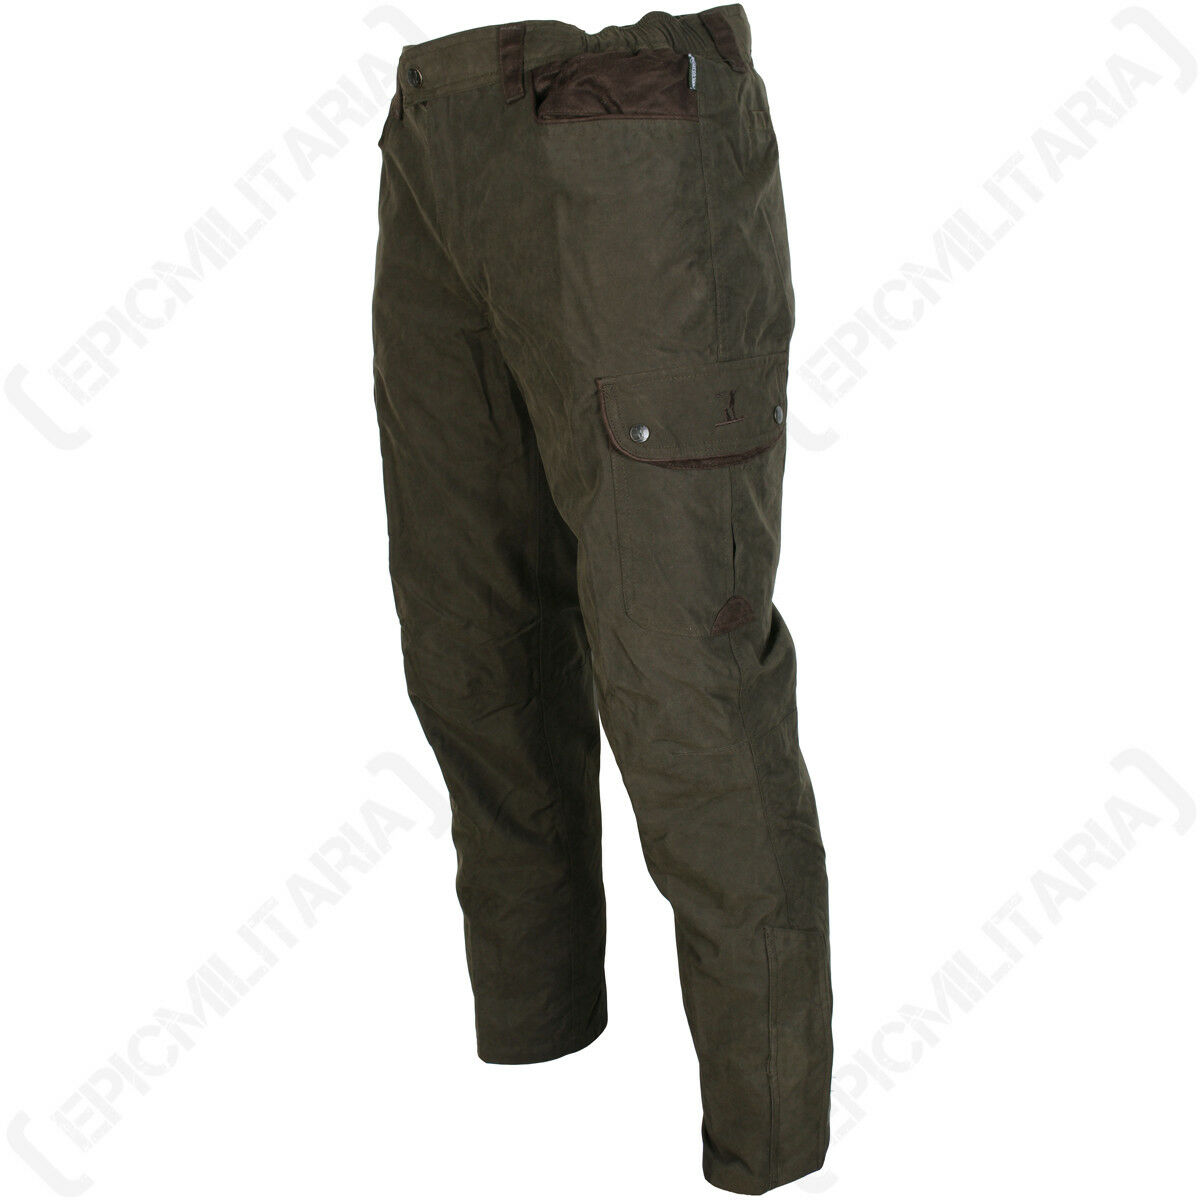 Percussion Normandie Conical Hunting Pants-Outdoor Waterproof